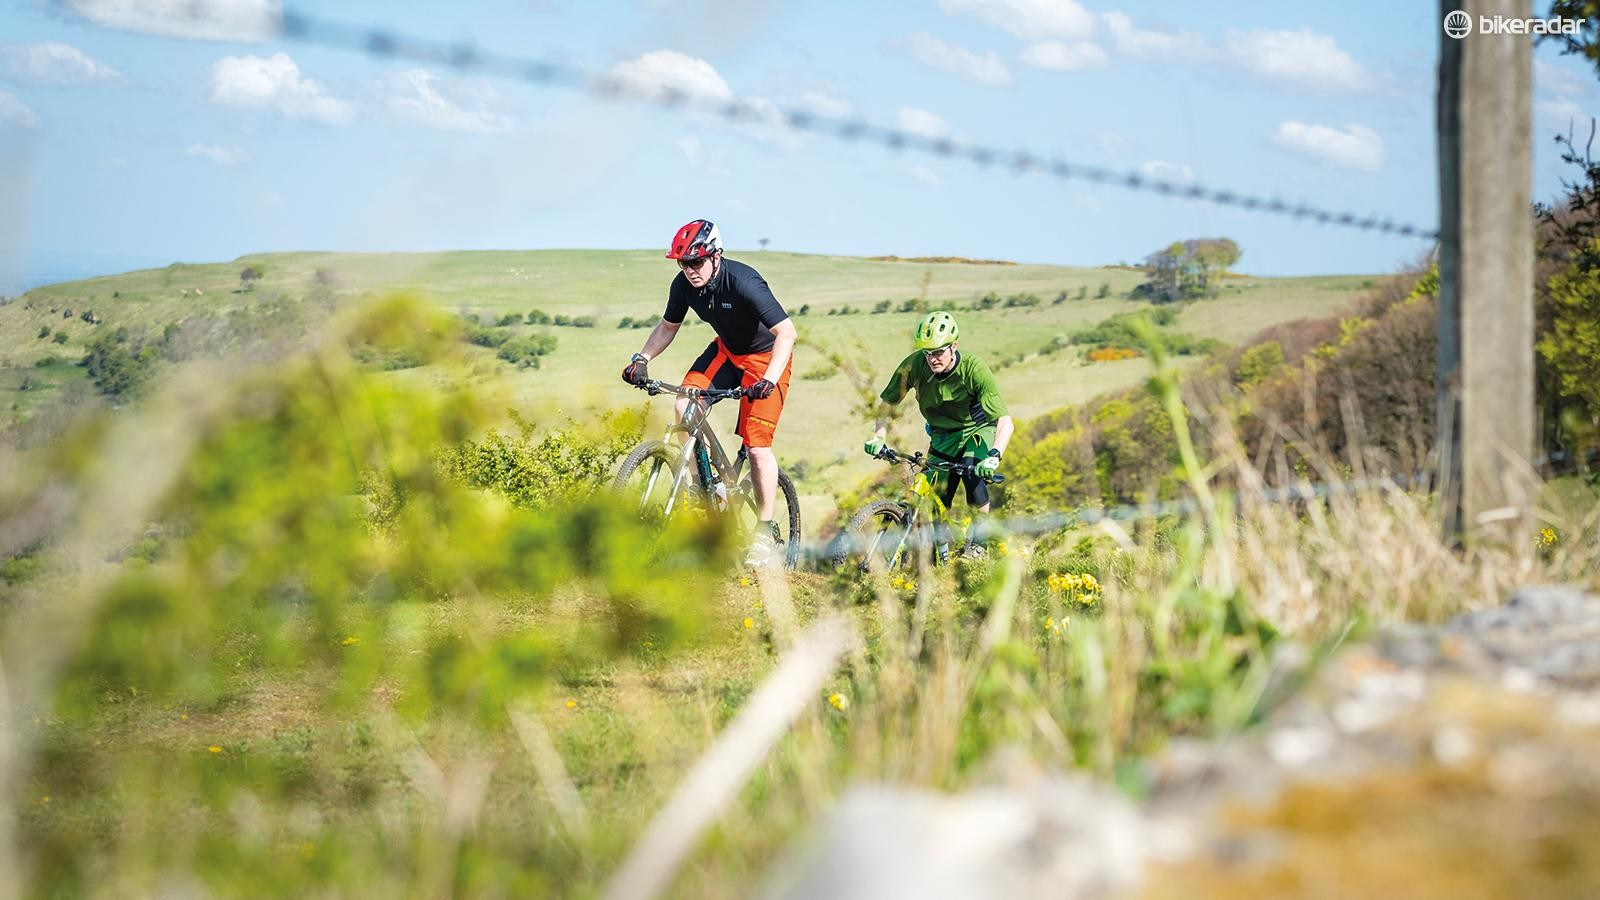 Taking part in an event gives you the chance to explore new trails